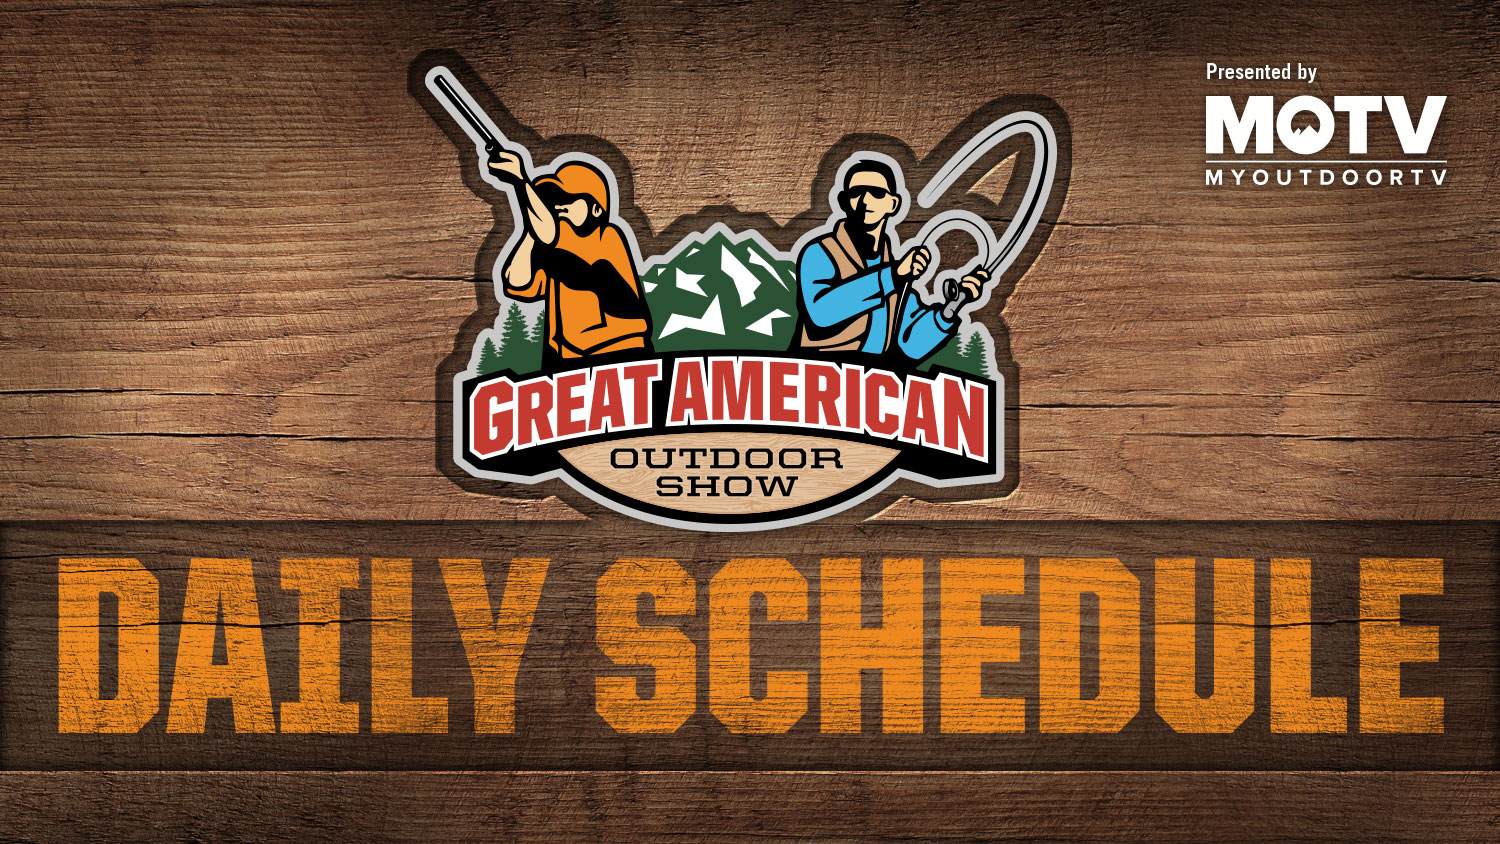 Great American Outdoor Show: Day 8 Schedule